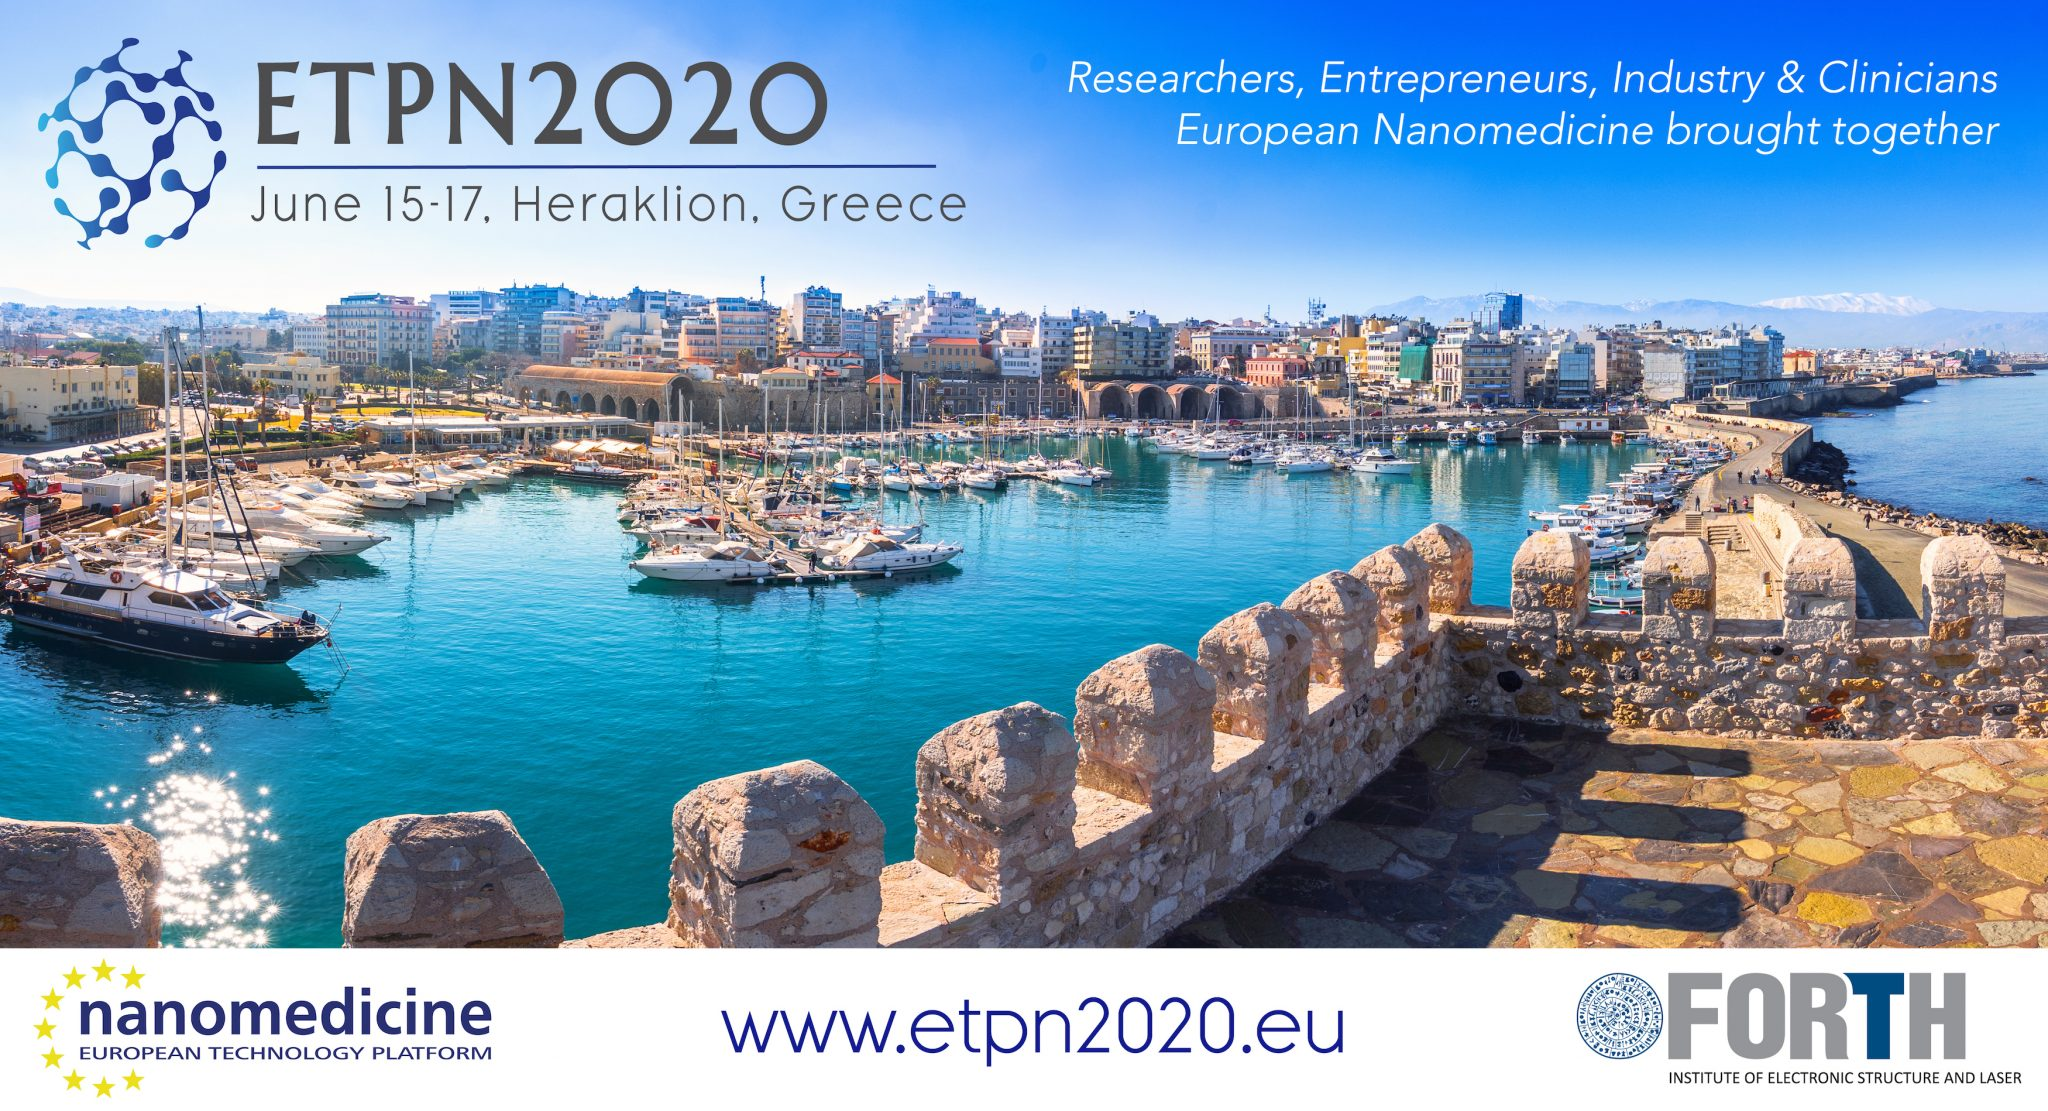 SAVE THE DATE! #ETPN2020 – June 15-17, Heraklion, Crete